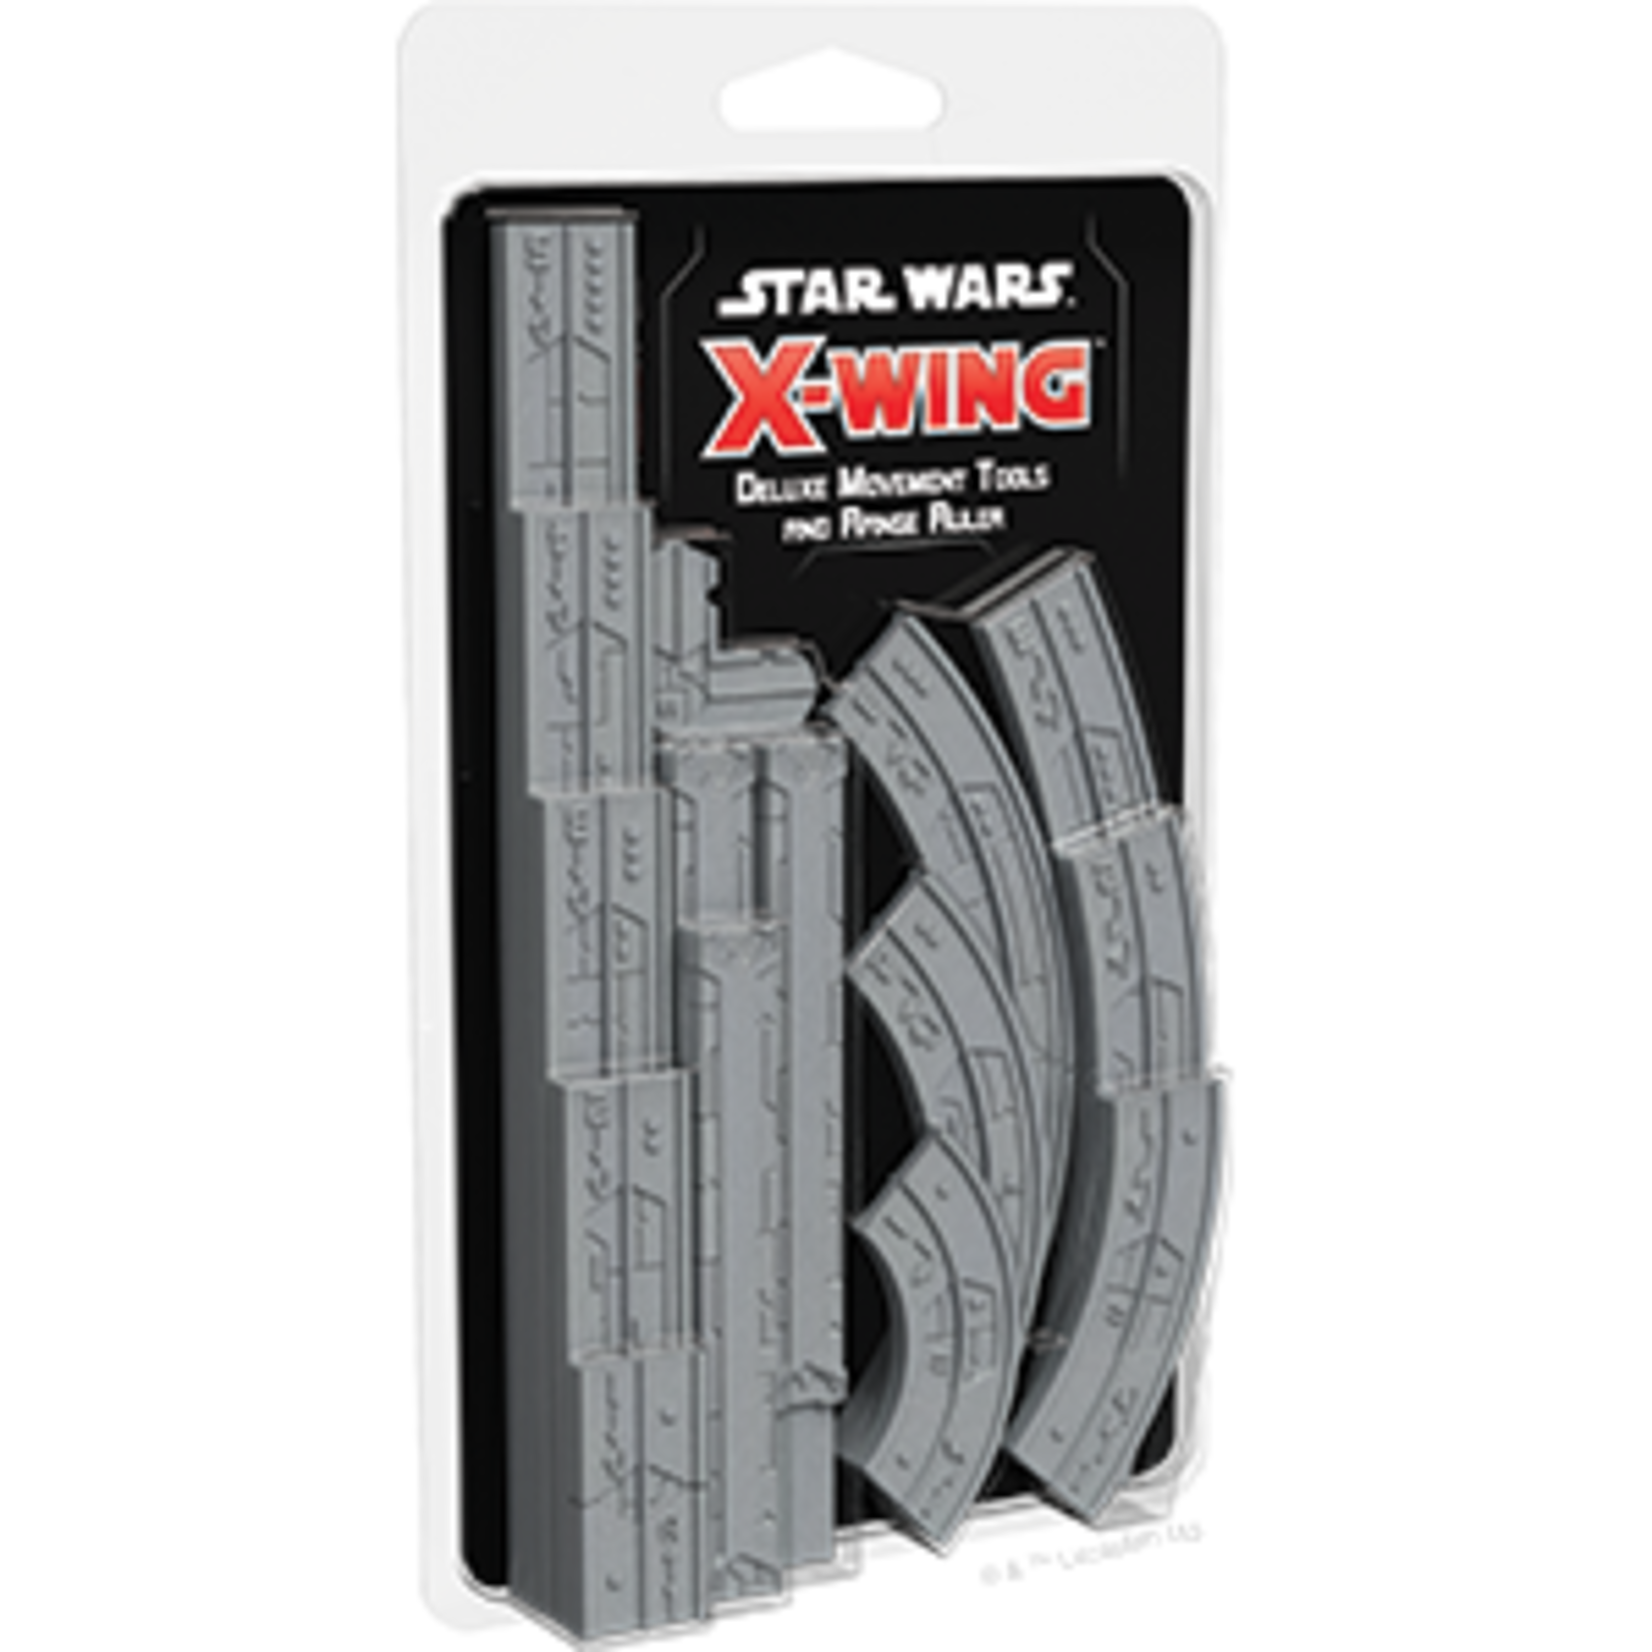 Fantasy Flight Games Star Wars X-Wing 2nd Edition: Deluxe Movement Tools & Range Ruler Expansion Pack